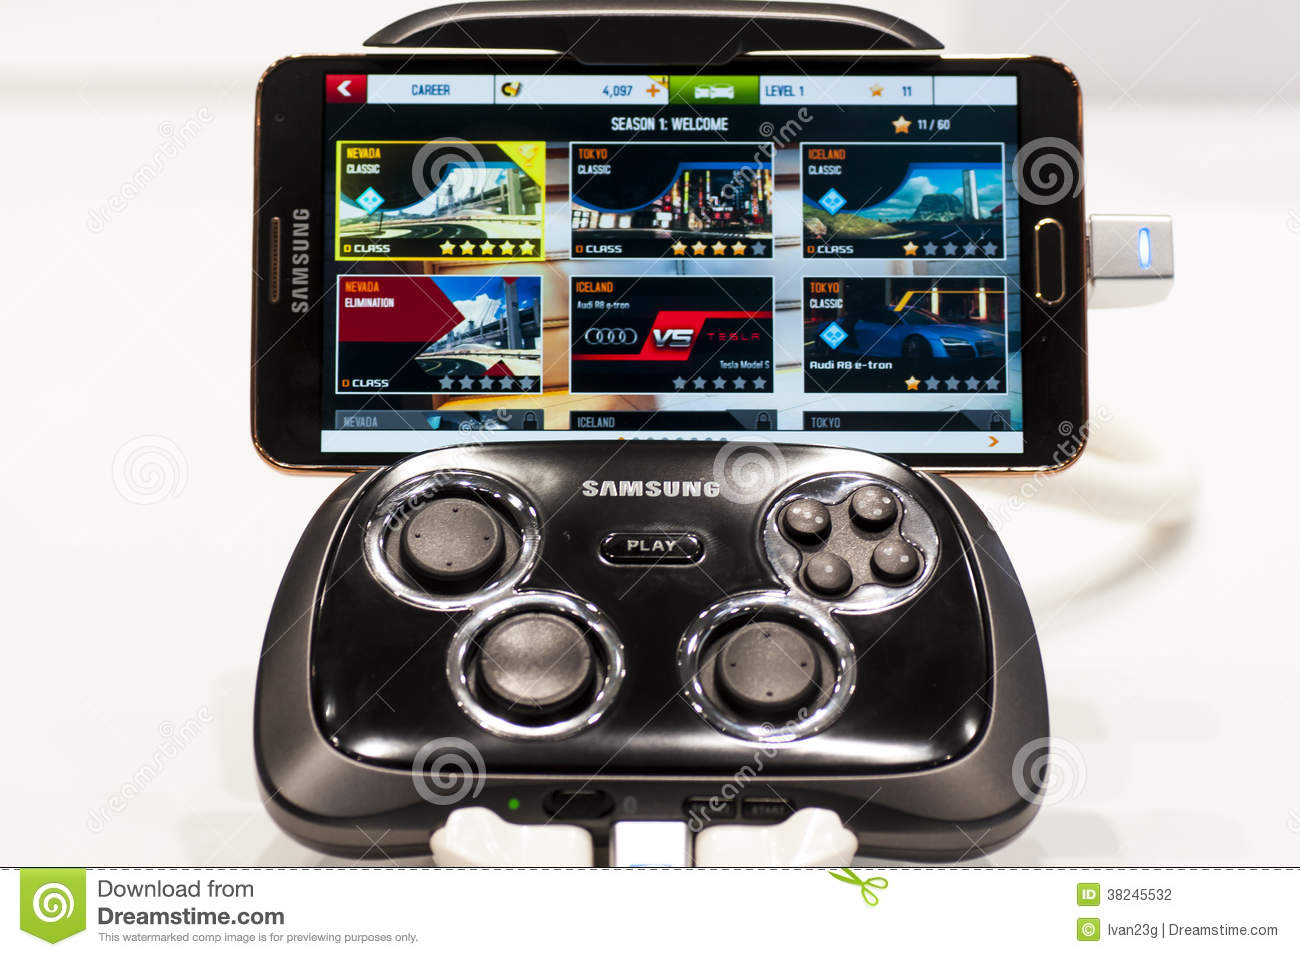 Samsung galaxy note 3 mobile world congress 2014 for Console mobile